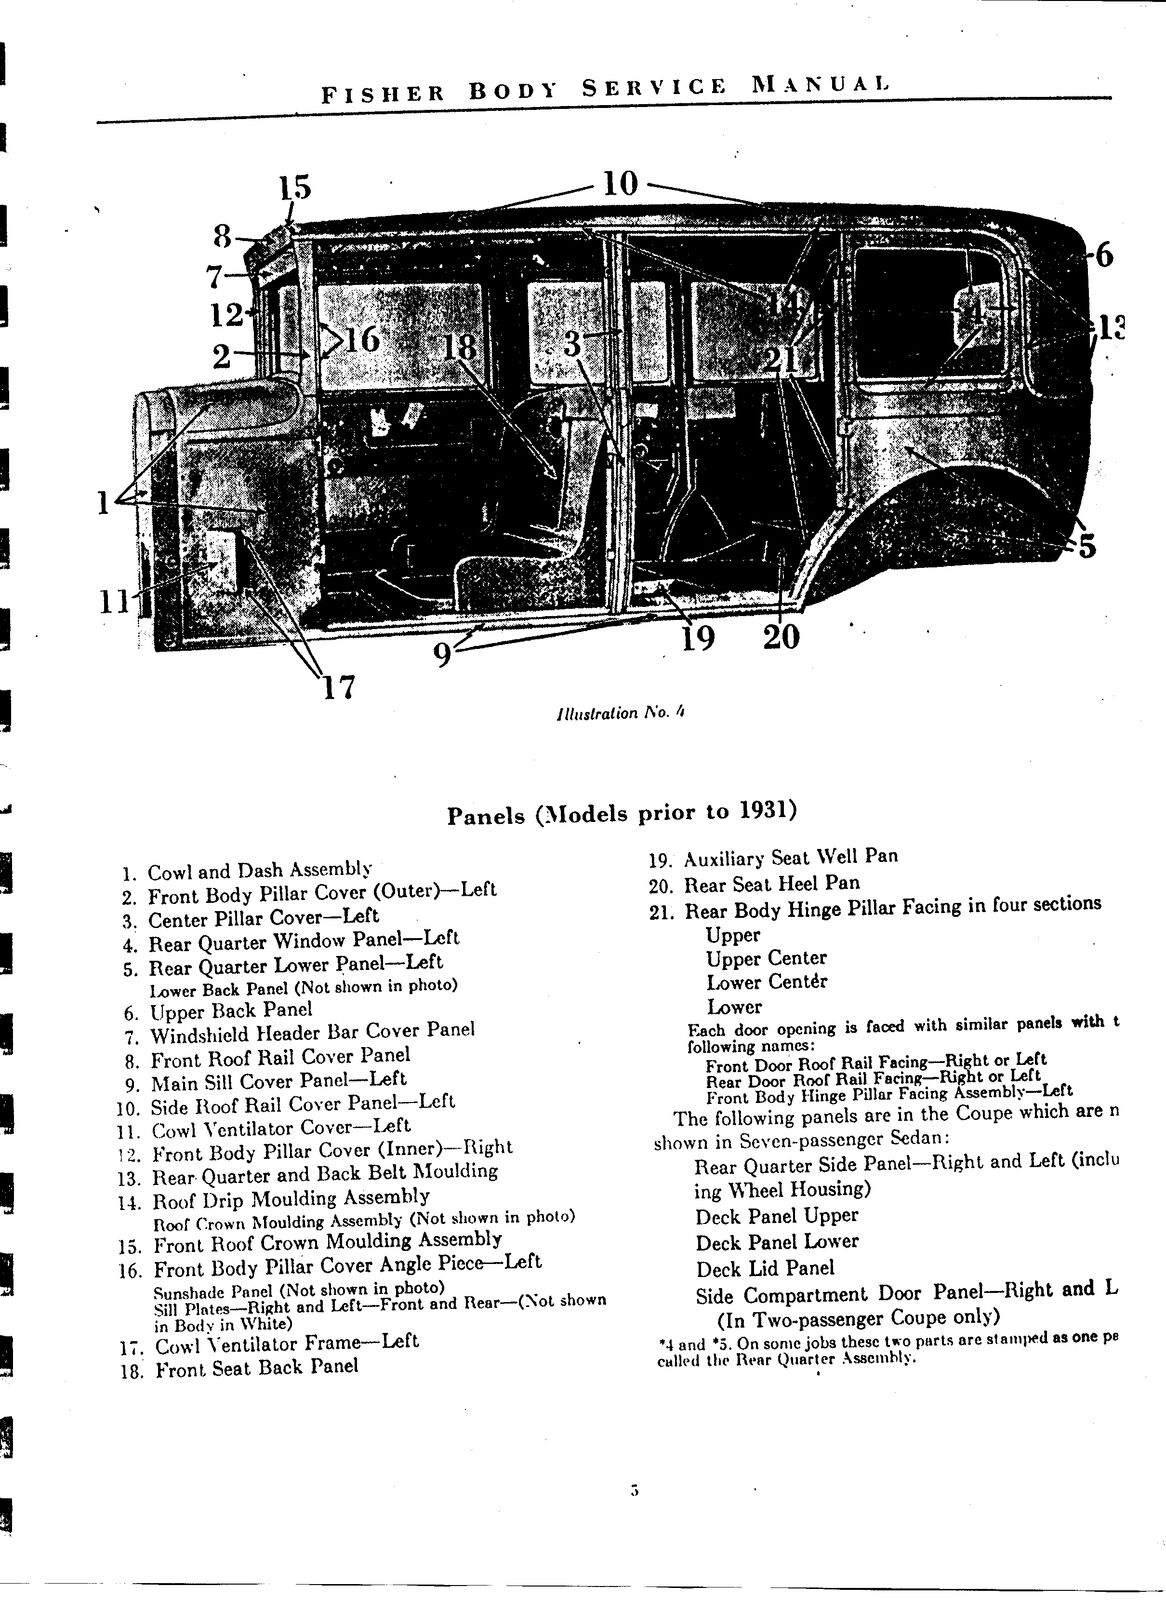 Engine Parts Diagram as well M zMiBmb3JkIHJvYWRzdGVyIGJsdWVwcmludA also Reproduction Ford Coe Parts moreover Flathead drawings trans furthermore Jaguar mark ten saloon  1961. on 1932 ford truck body parts